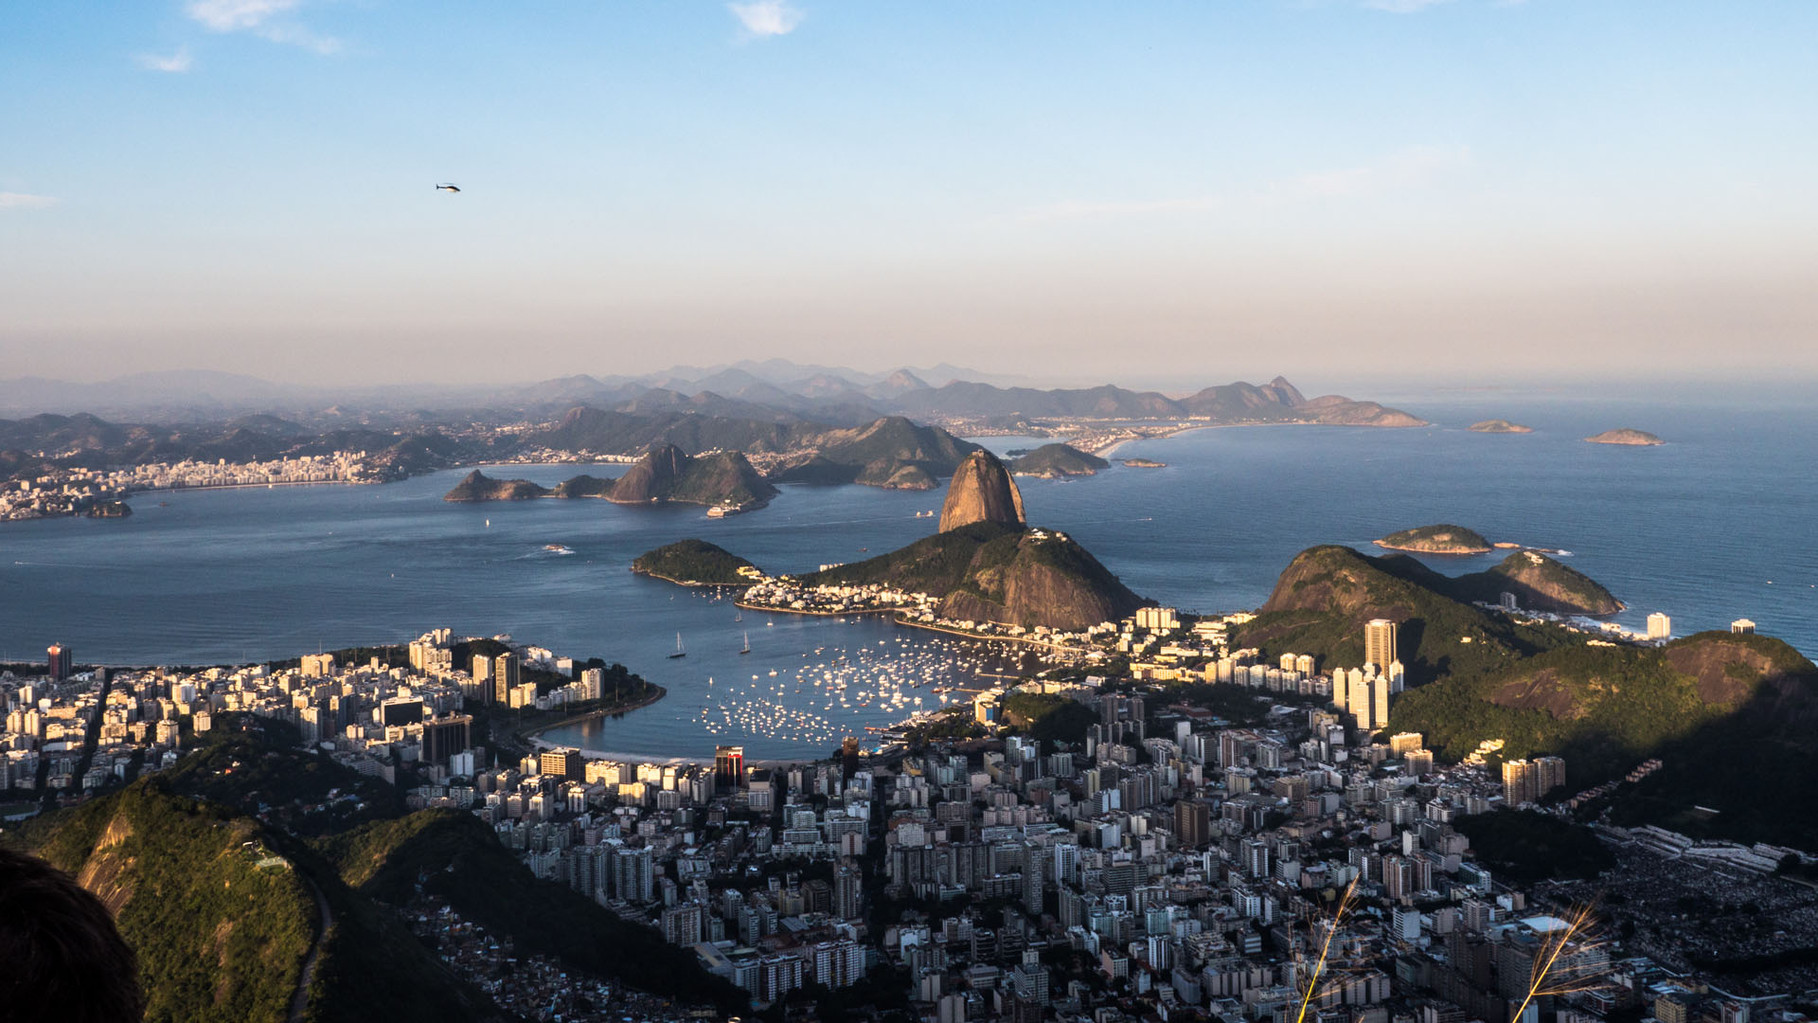 Rio (Sugarloaf in the center of the picture), panoramic view from Corcovado (Christ the Redeemer statue) [Brazil, 2014]